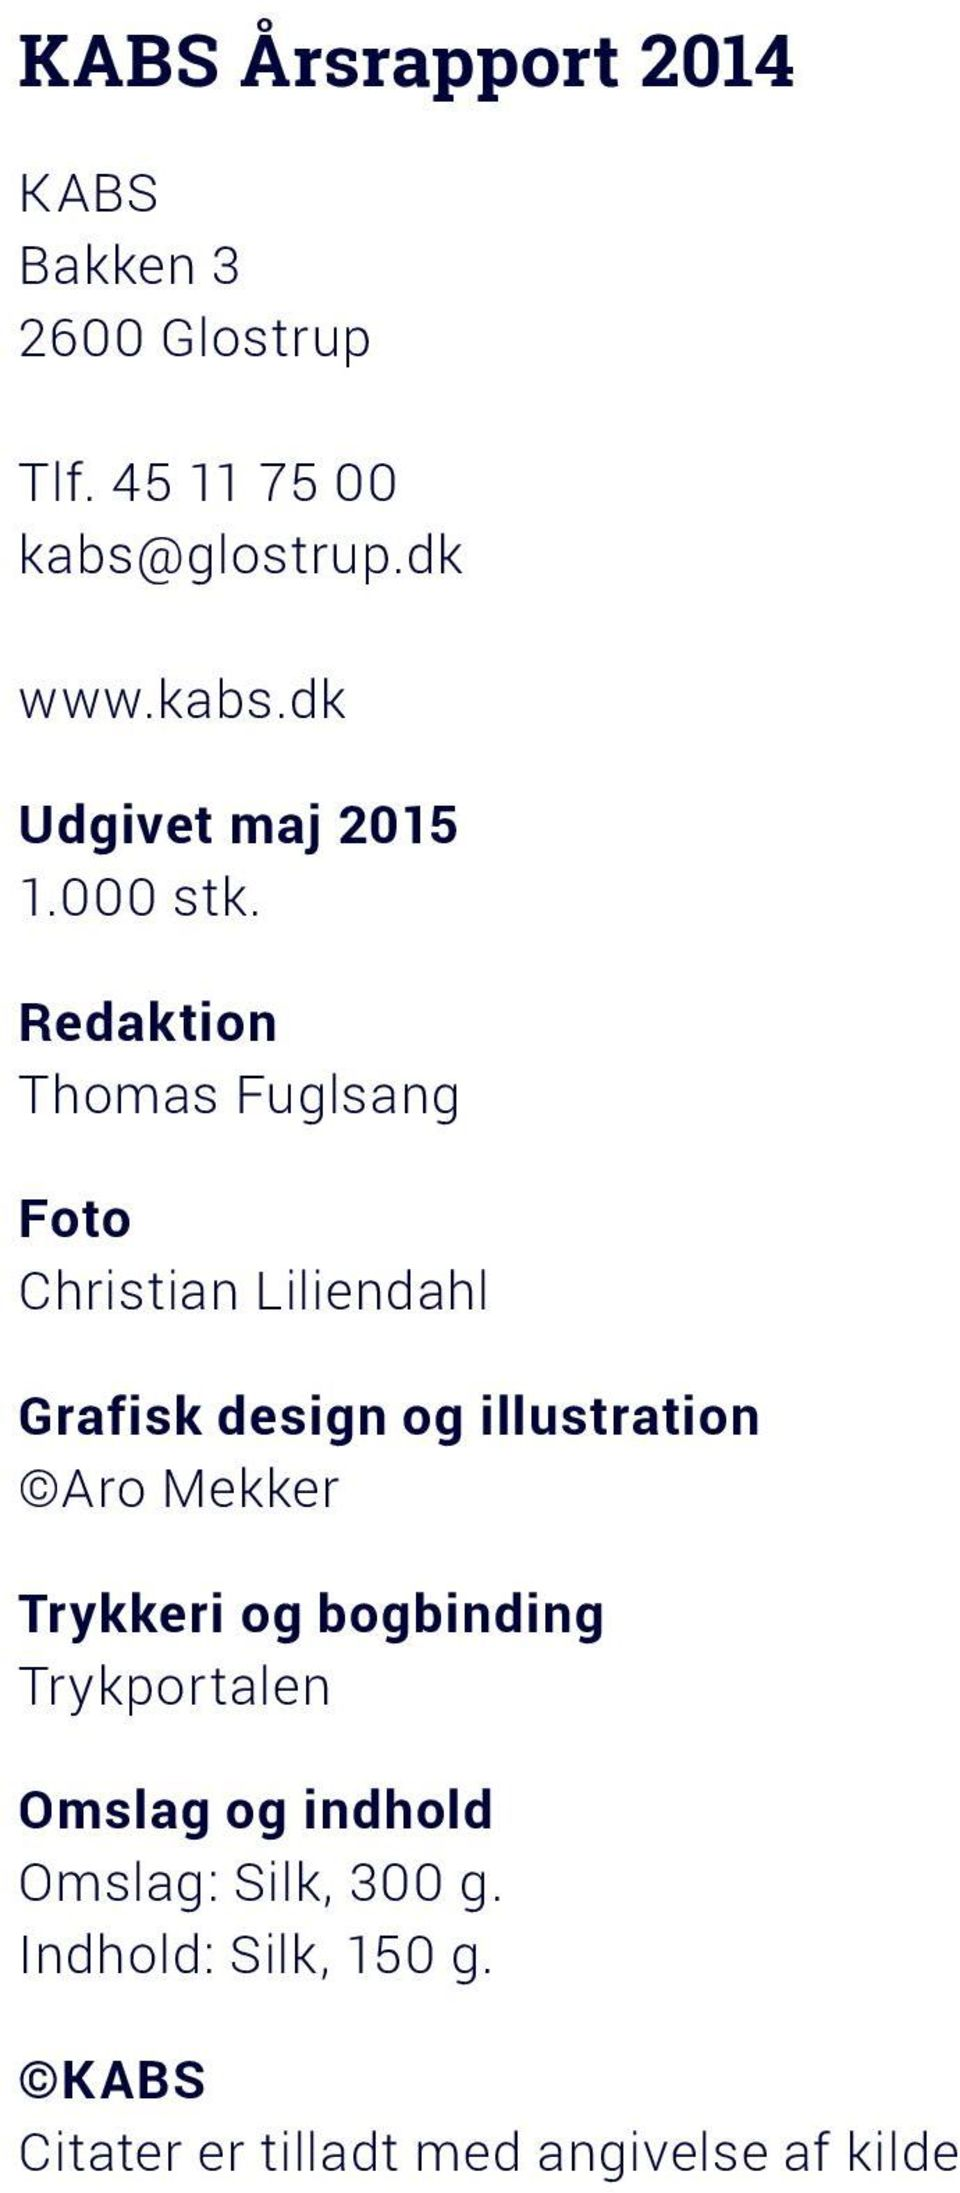 Redaktion Thomas Fuglsang Foto Christian Liliendahl Grafisk design og illustration Aro